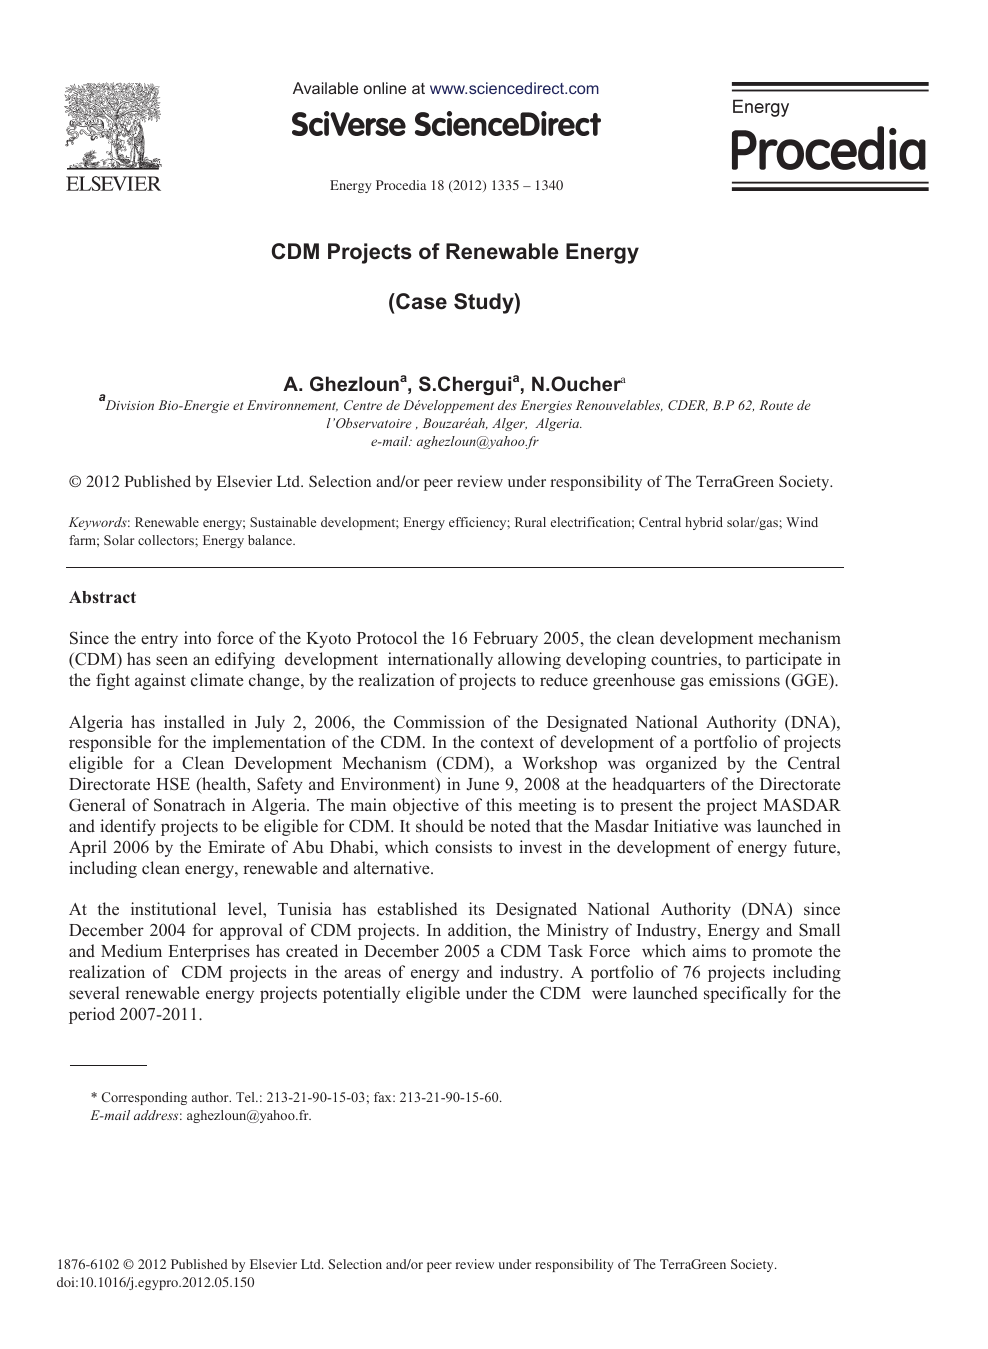 CDM Projects of Renewable Energy(Case Study) – topic of research